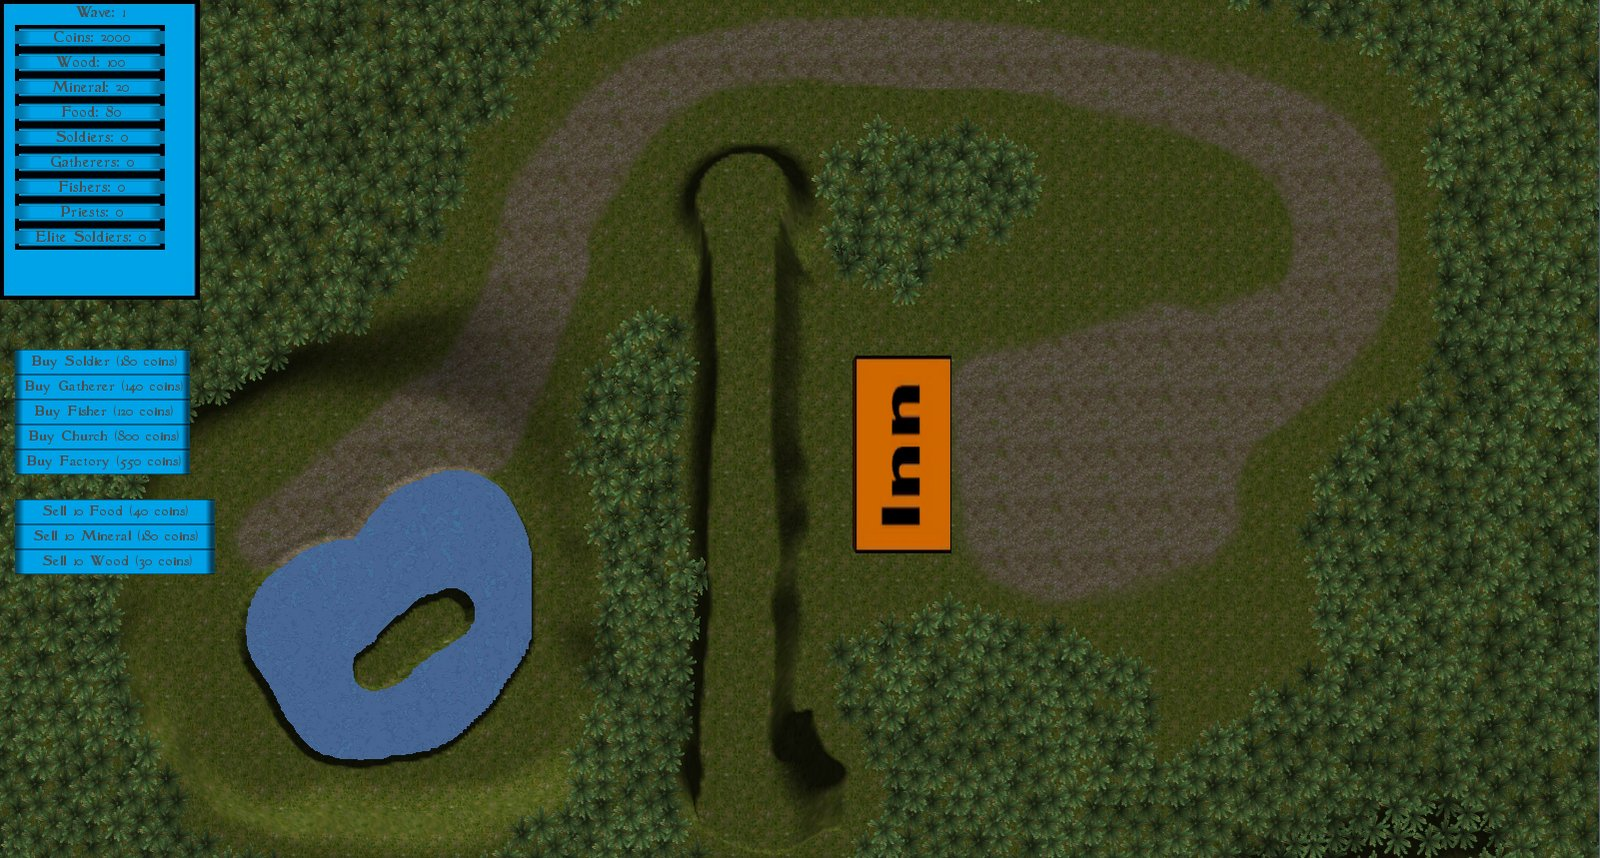 my first gaming check keepsake The quickest way is to start the quest legacy of cain and use the waypoint to the old ruins look for the old keepsake box at the locations marked by red x once found or not(it could have spawned at the the old tristram road), leave the game and resume repeat until all 6 journals are found.